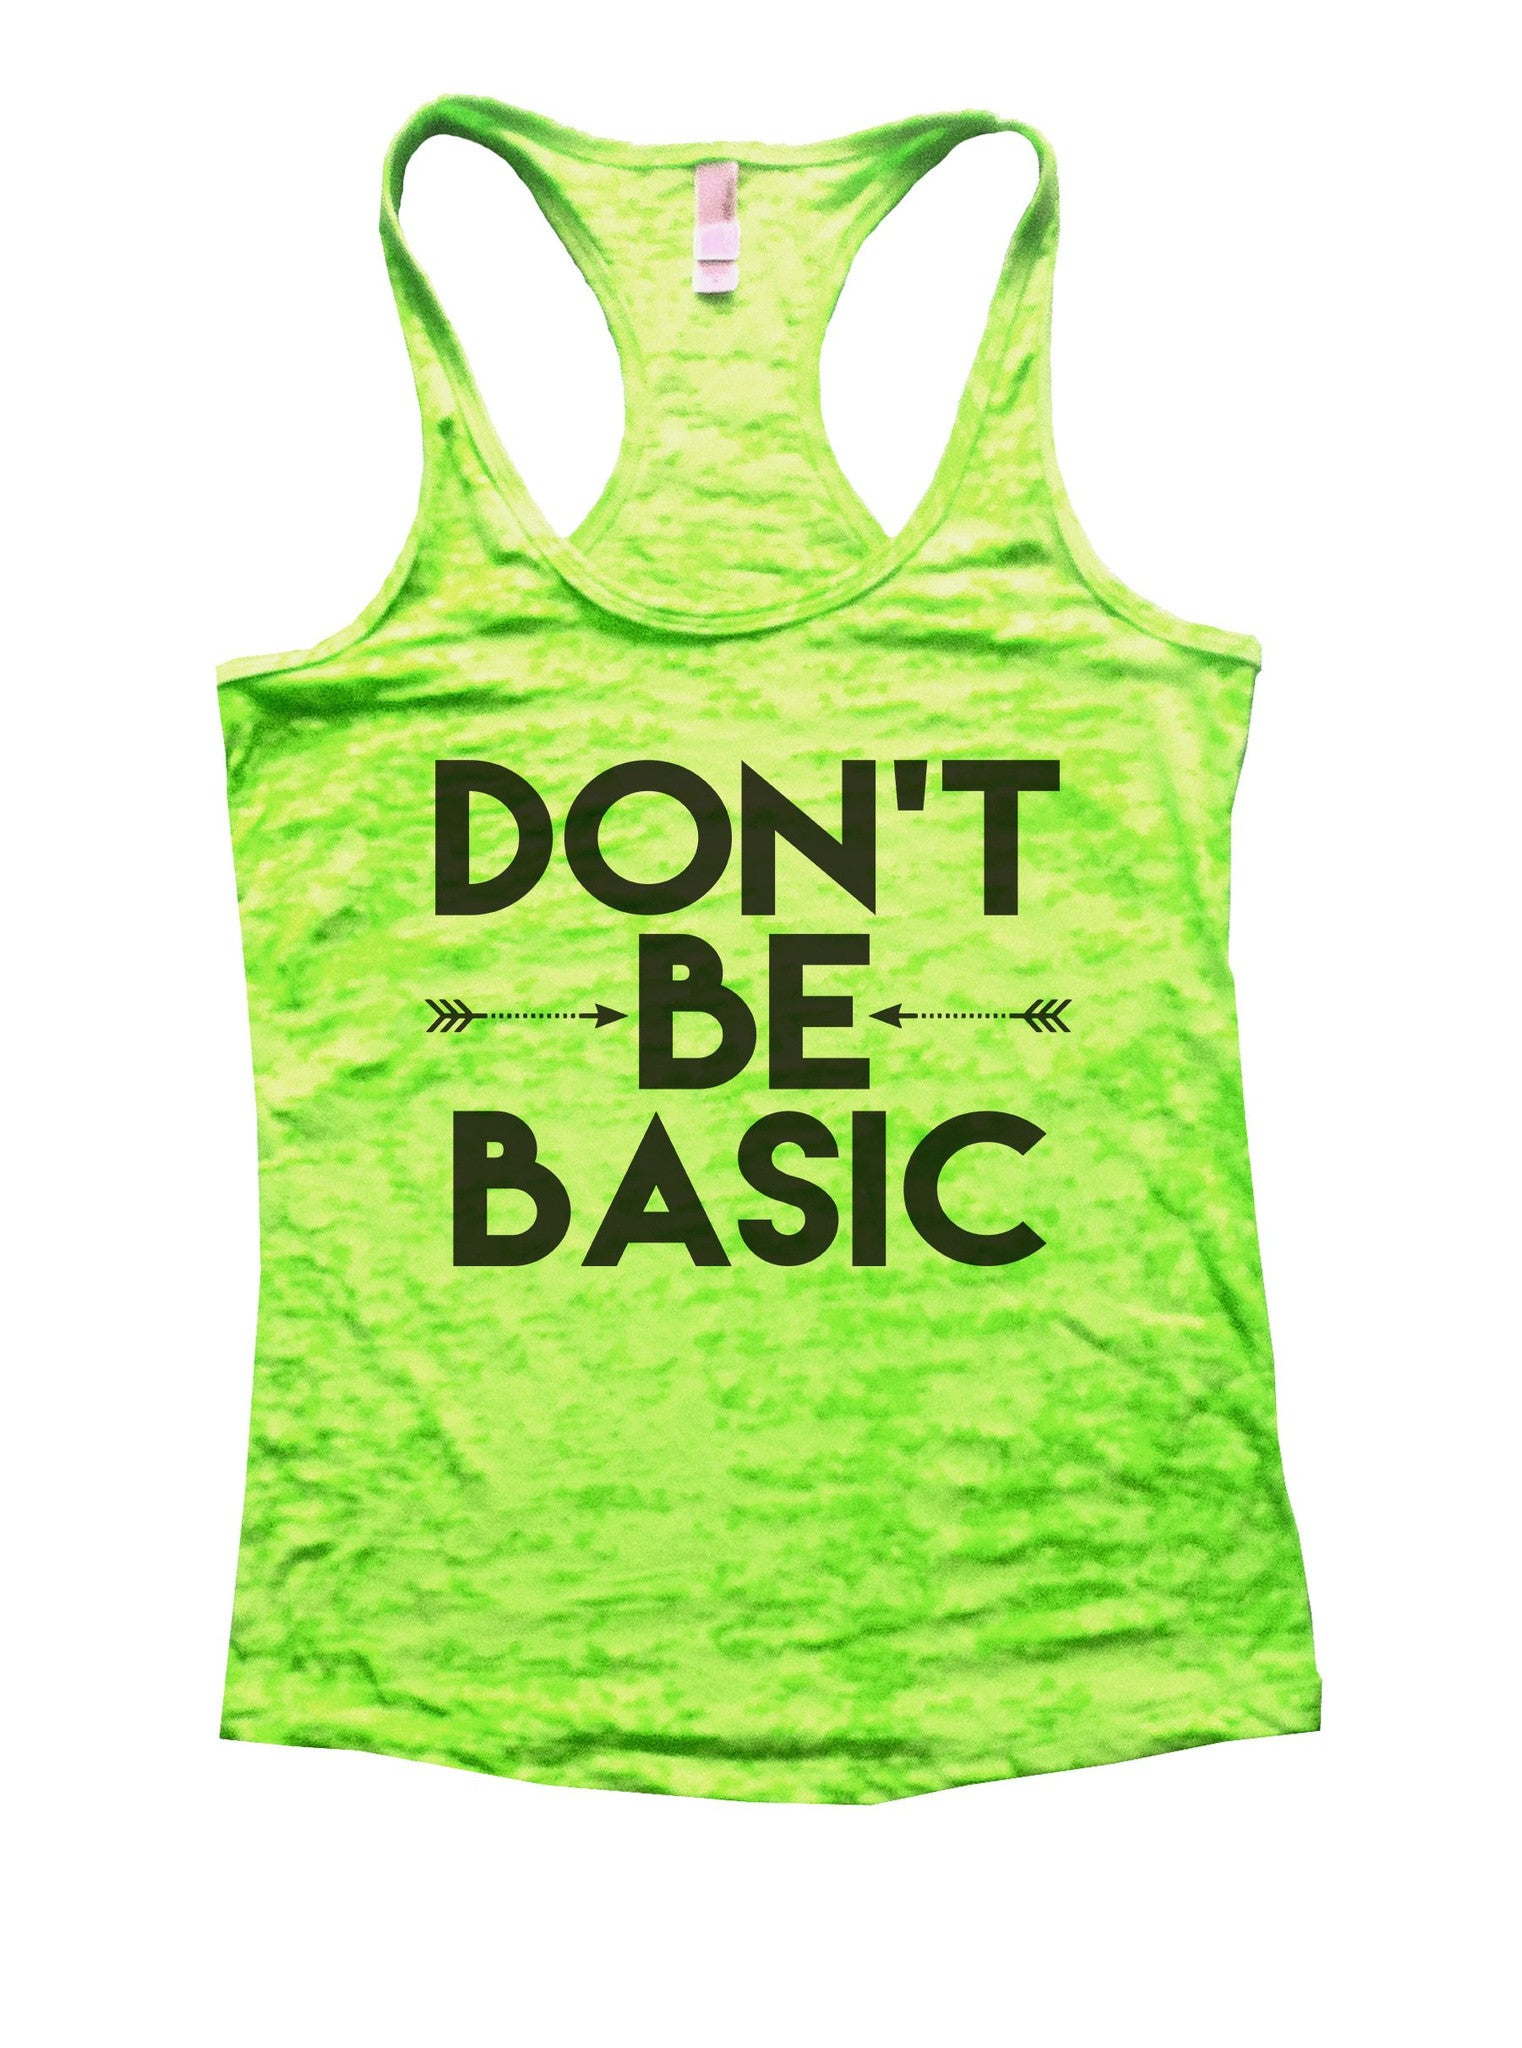 Don't Be Basic Burnout Tank Top By BurnoutTankTops.com - 920 - Funny Shirts Tank Tops Burnouts and Triblends  - 3